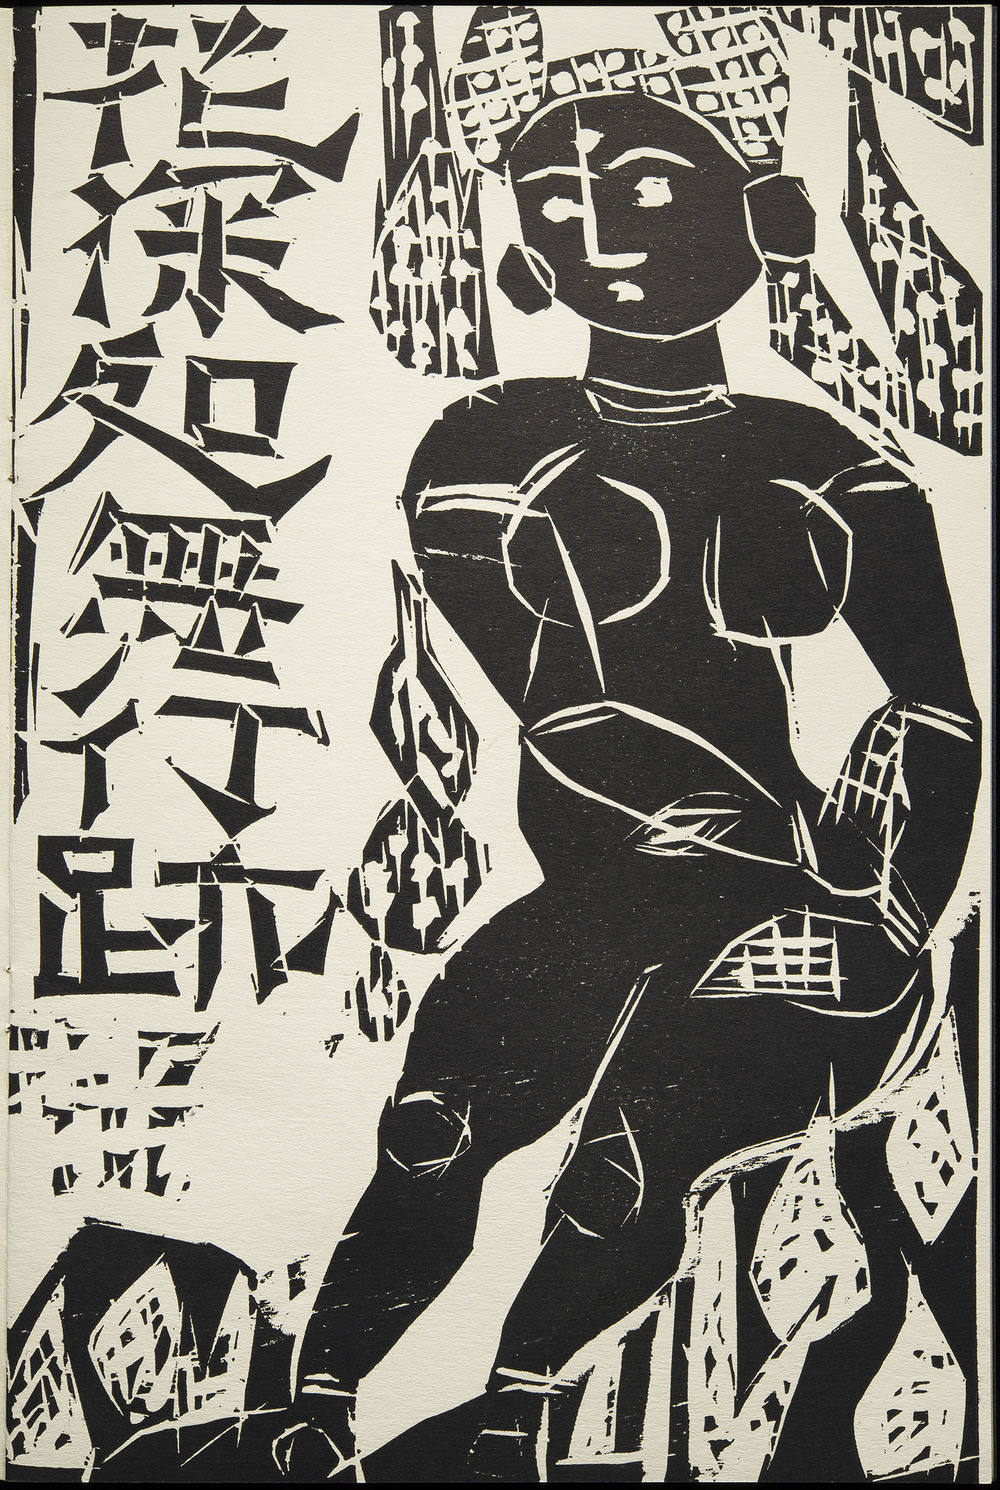 Munakata,  The Way of the Woodcut , Pratt Adlib Press, Brooklyn, 1961, 20.2 x 30.1 cm